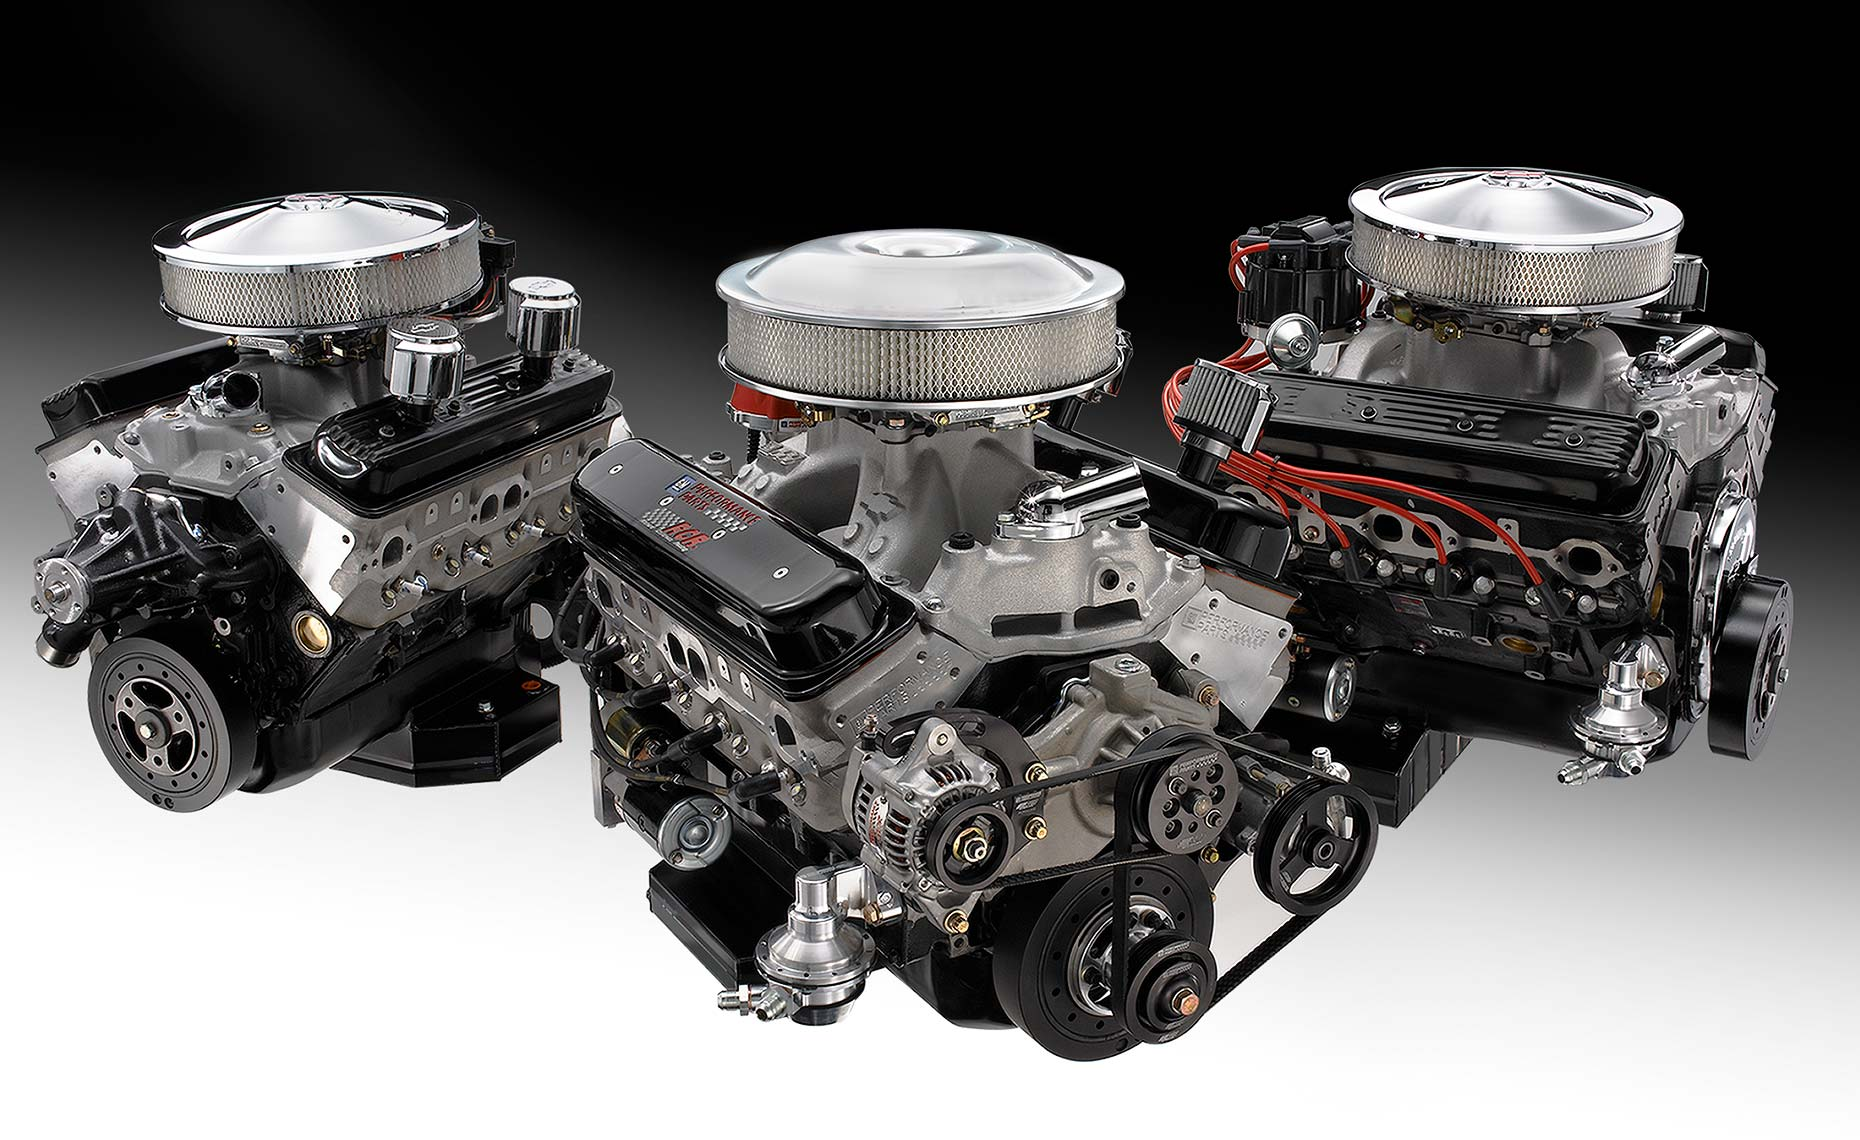 chevrolet crate engine-3 engine family-gm parts.jpg